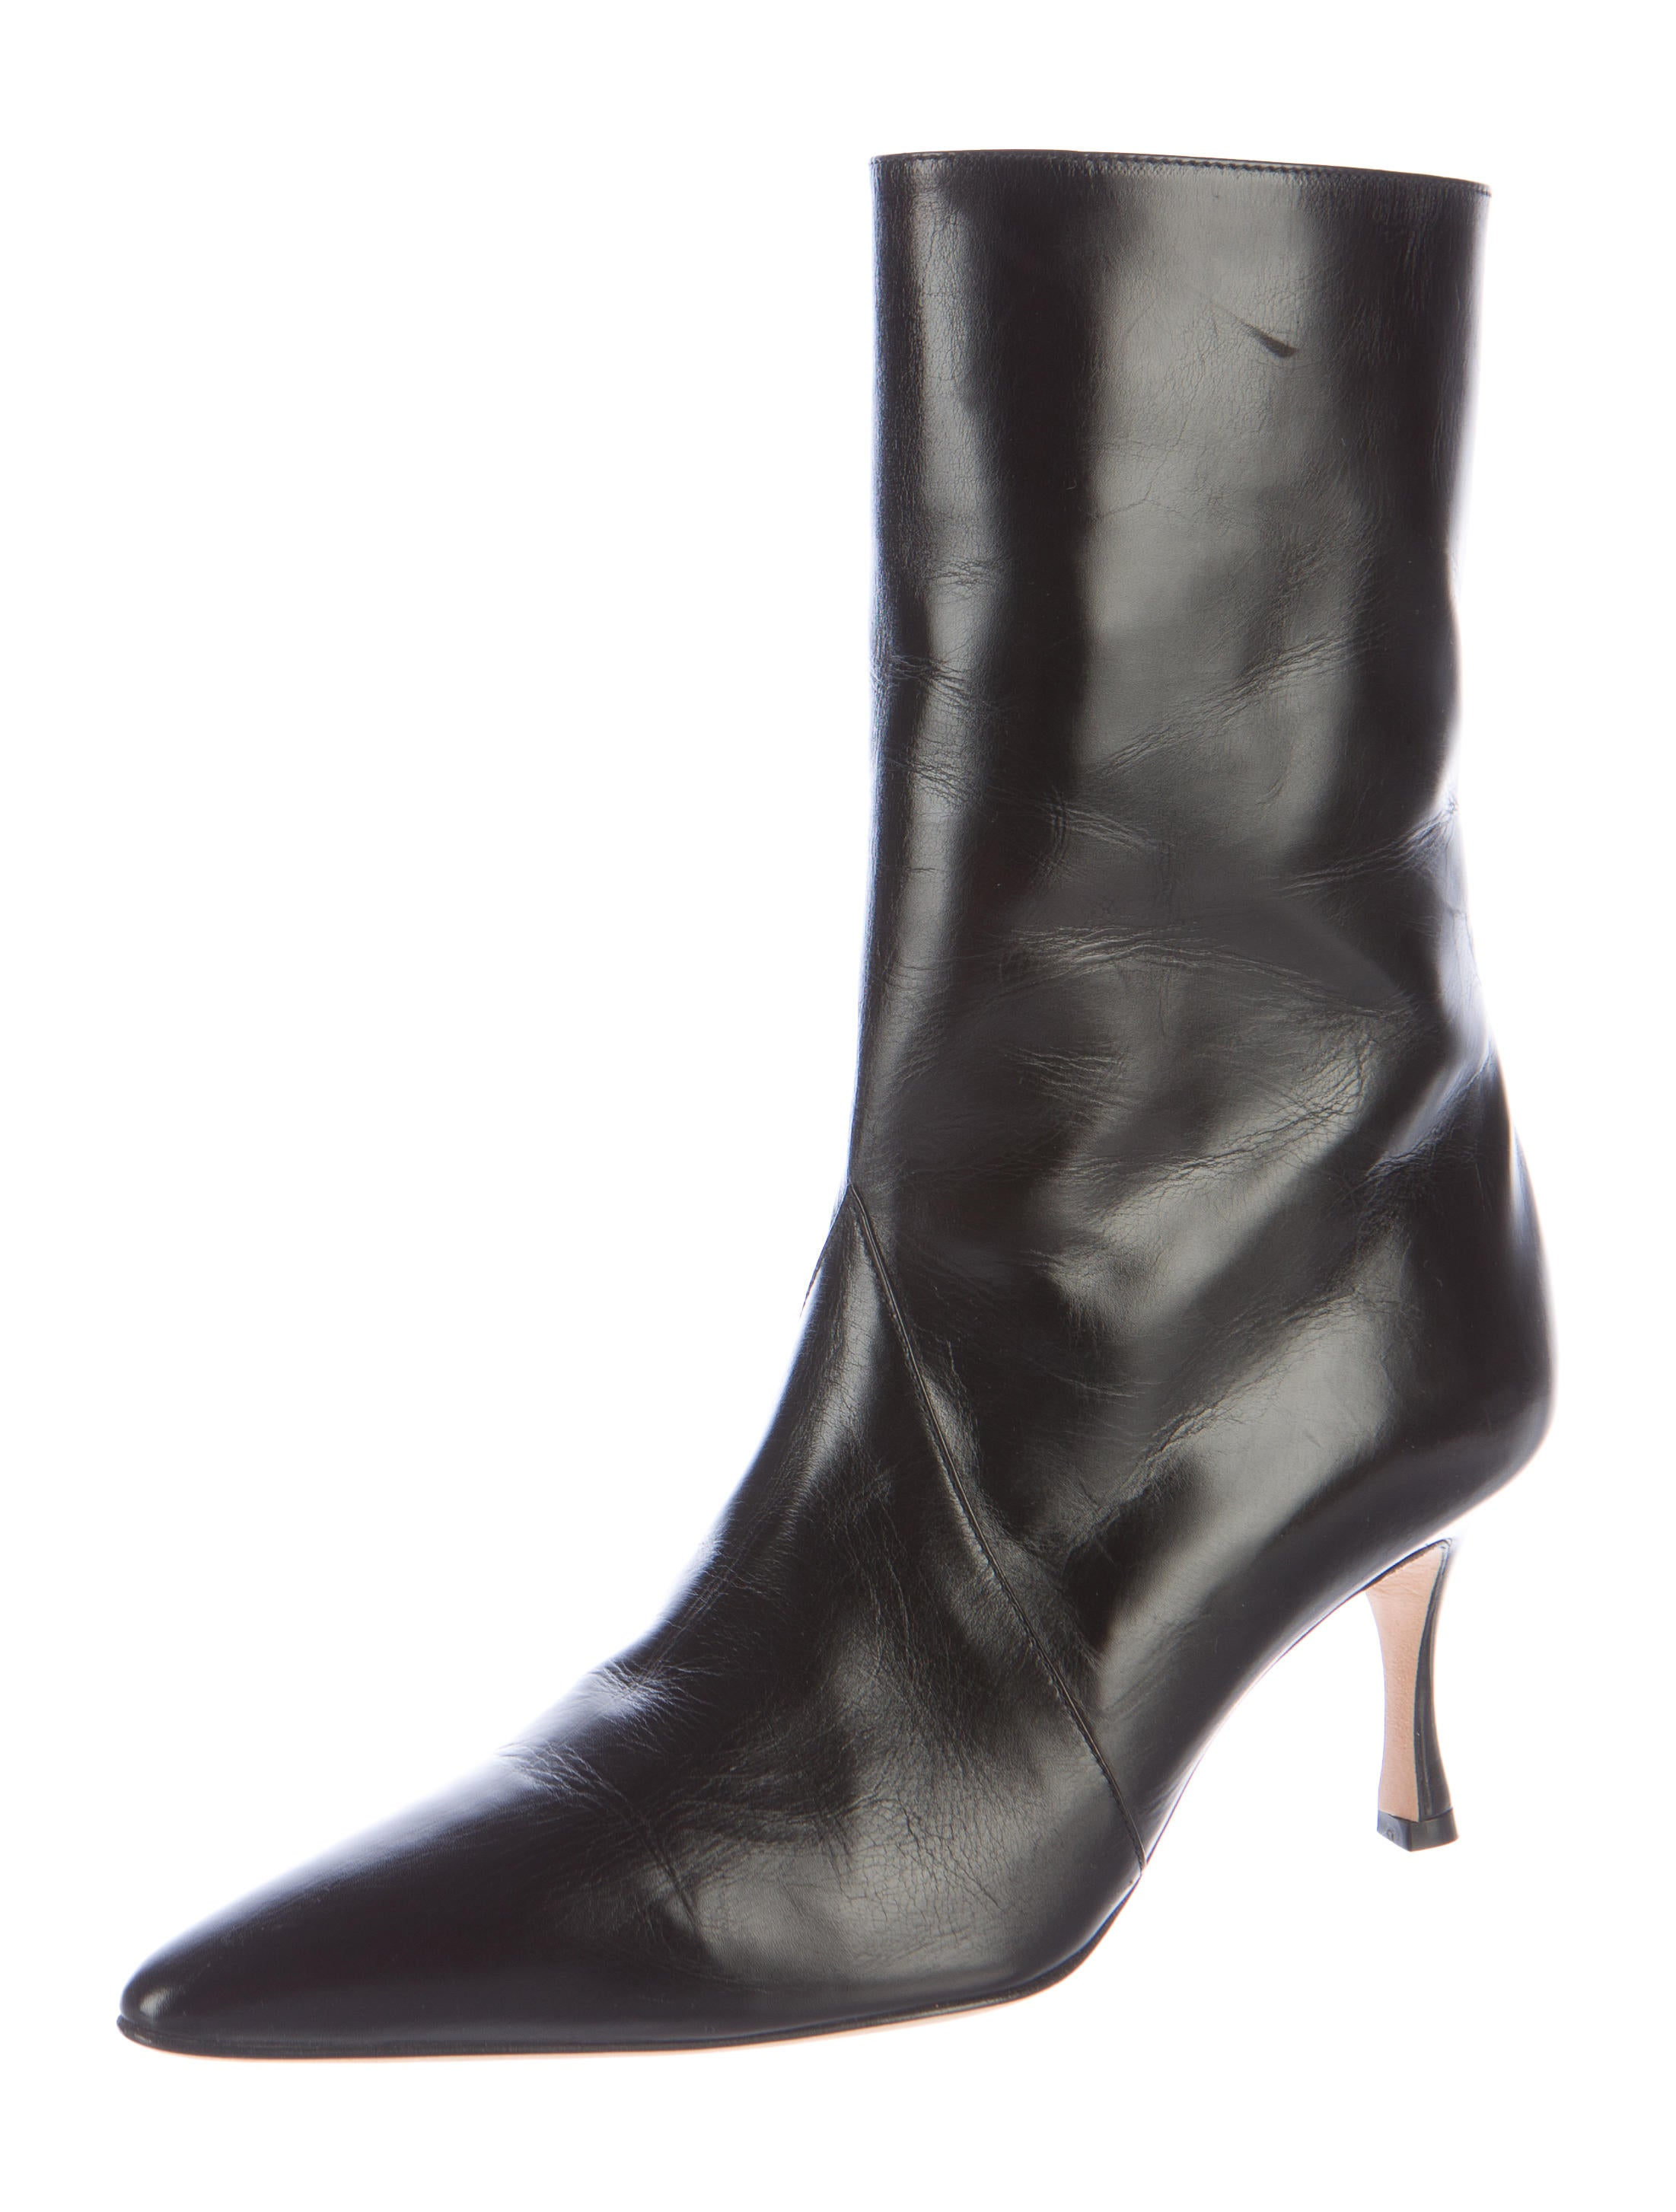 manolo blahnik pointed toe leather ankle boots shoes